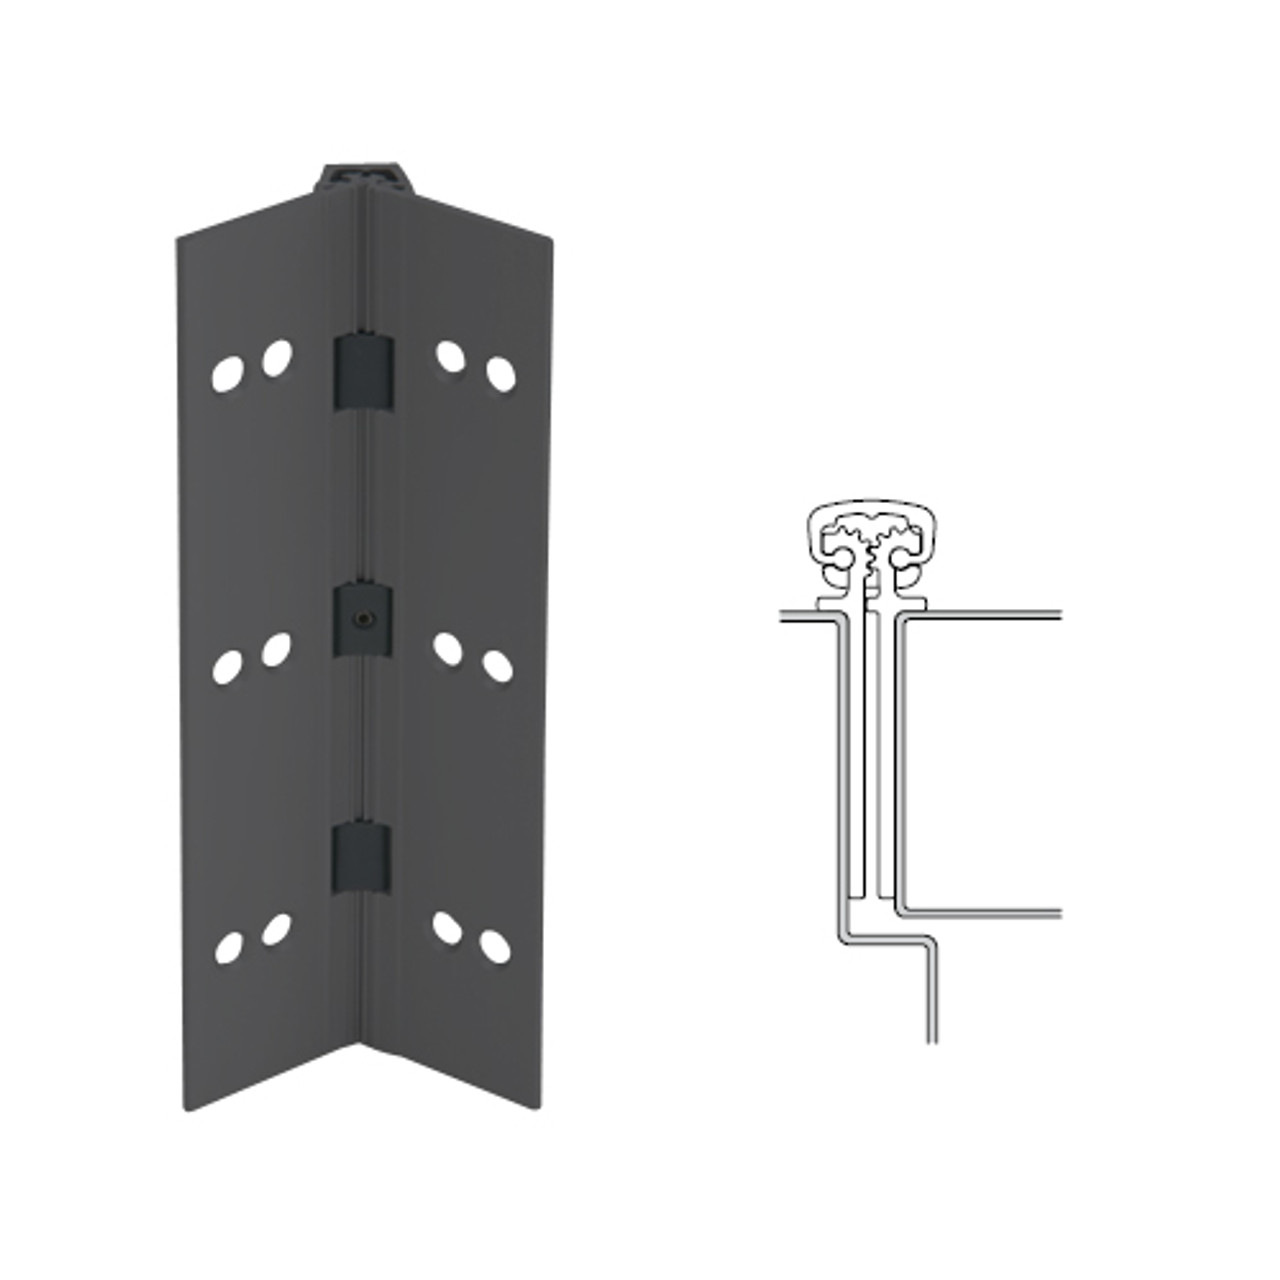 027XY-315AN-95 IVES Full Mortise Continuous Geared Hinges in Anodized Black